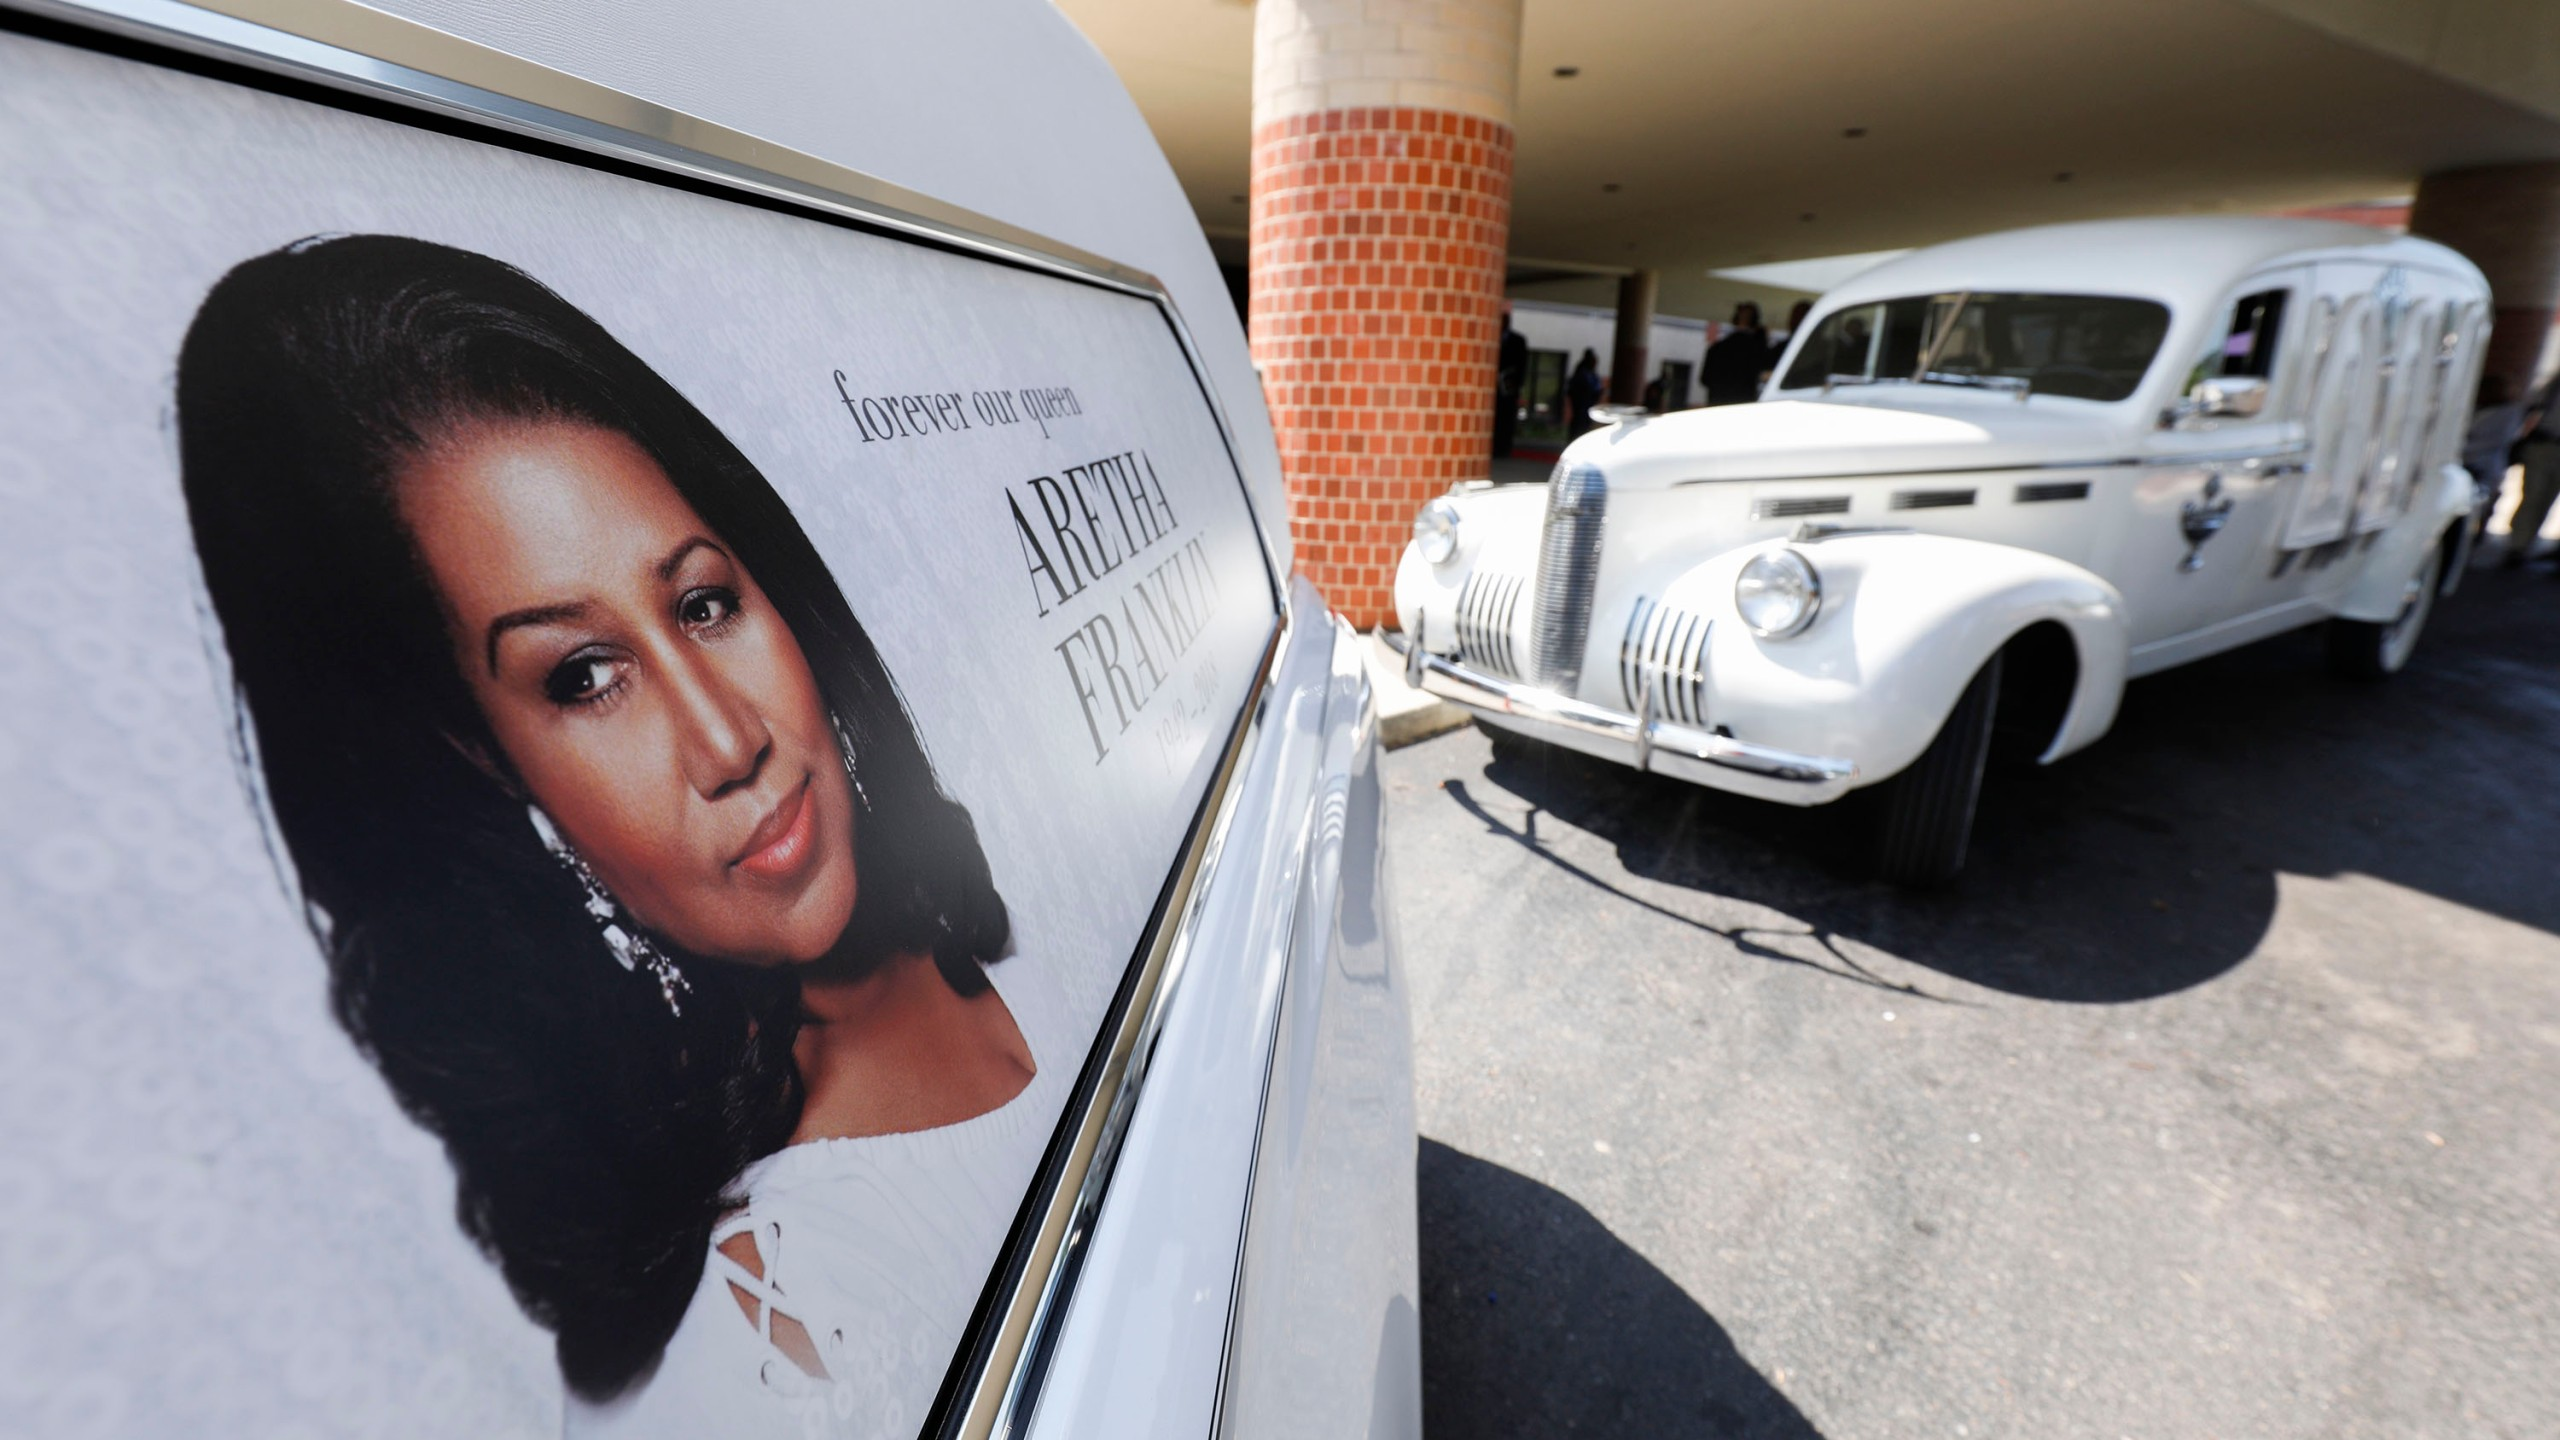 The hearse that carried the remains of soul music icon Aretha Franklin sits outside Greater Grace Temple during her funeral on Aug.31, 2018 in Detroit, Michigan. (Credit: Bill Pugliano/Getty Images)